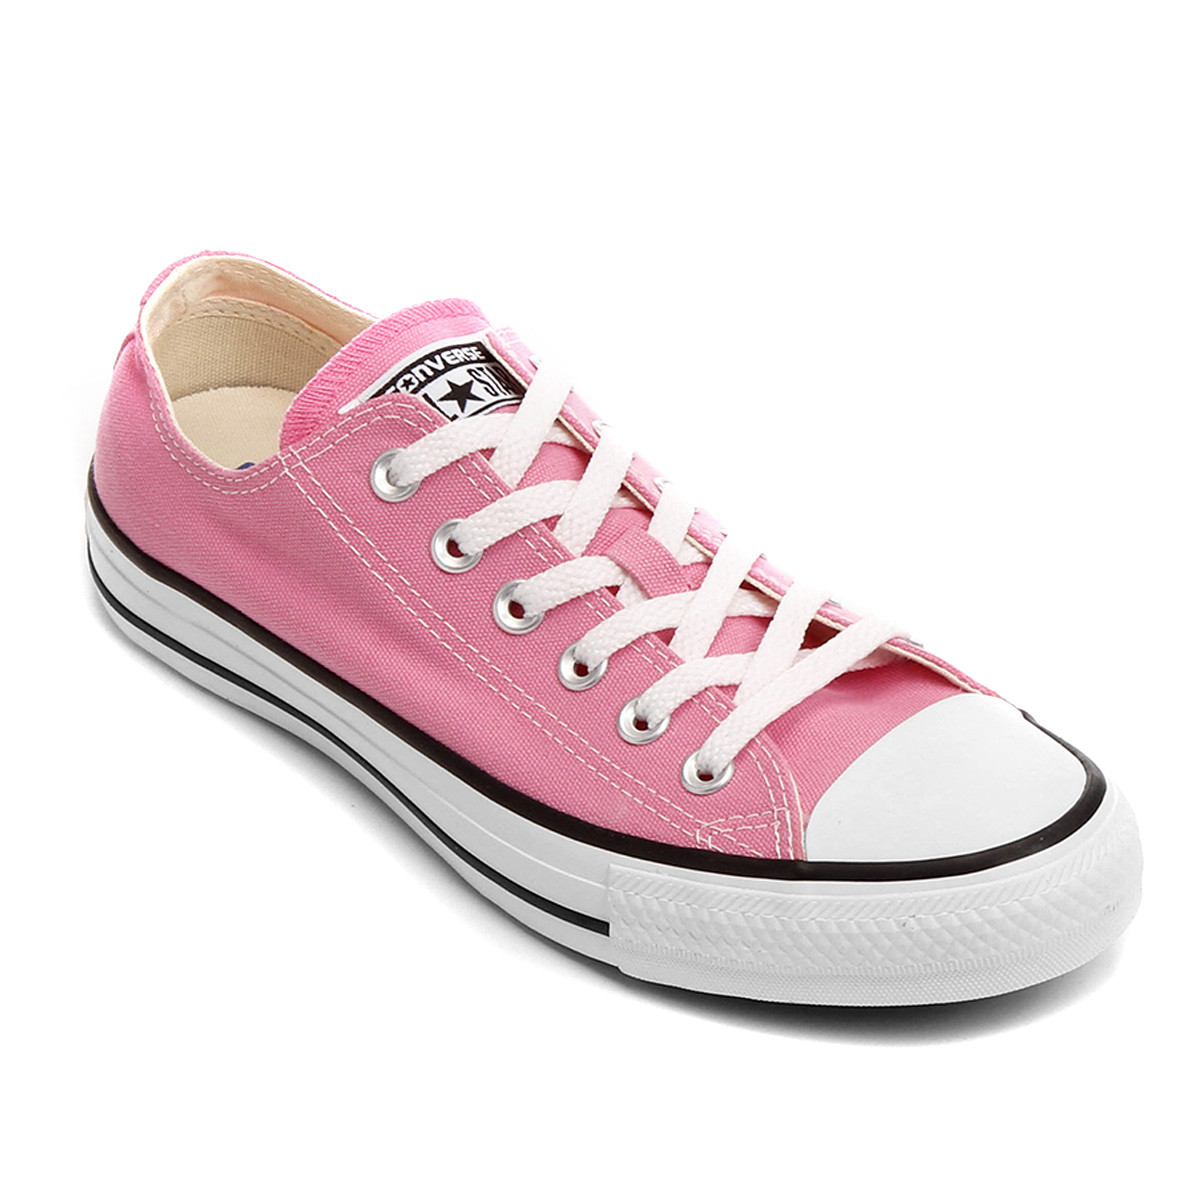 Tênis Converse All Star Ct As Core Ox - Rosa e Branco - Maria Majestade -  Tênis Personalizados b66cb43a70e